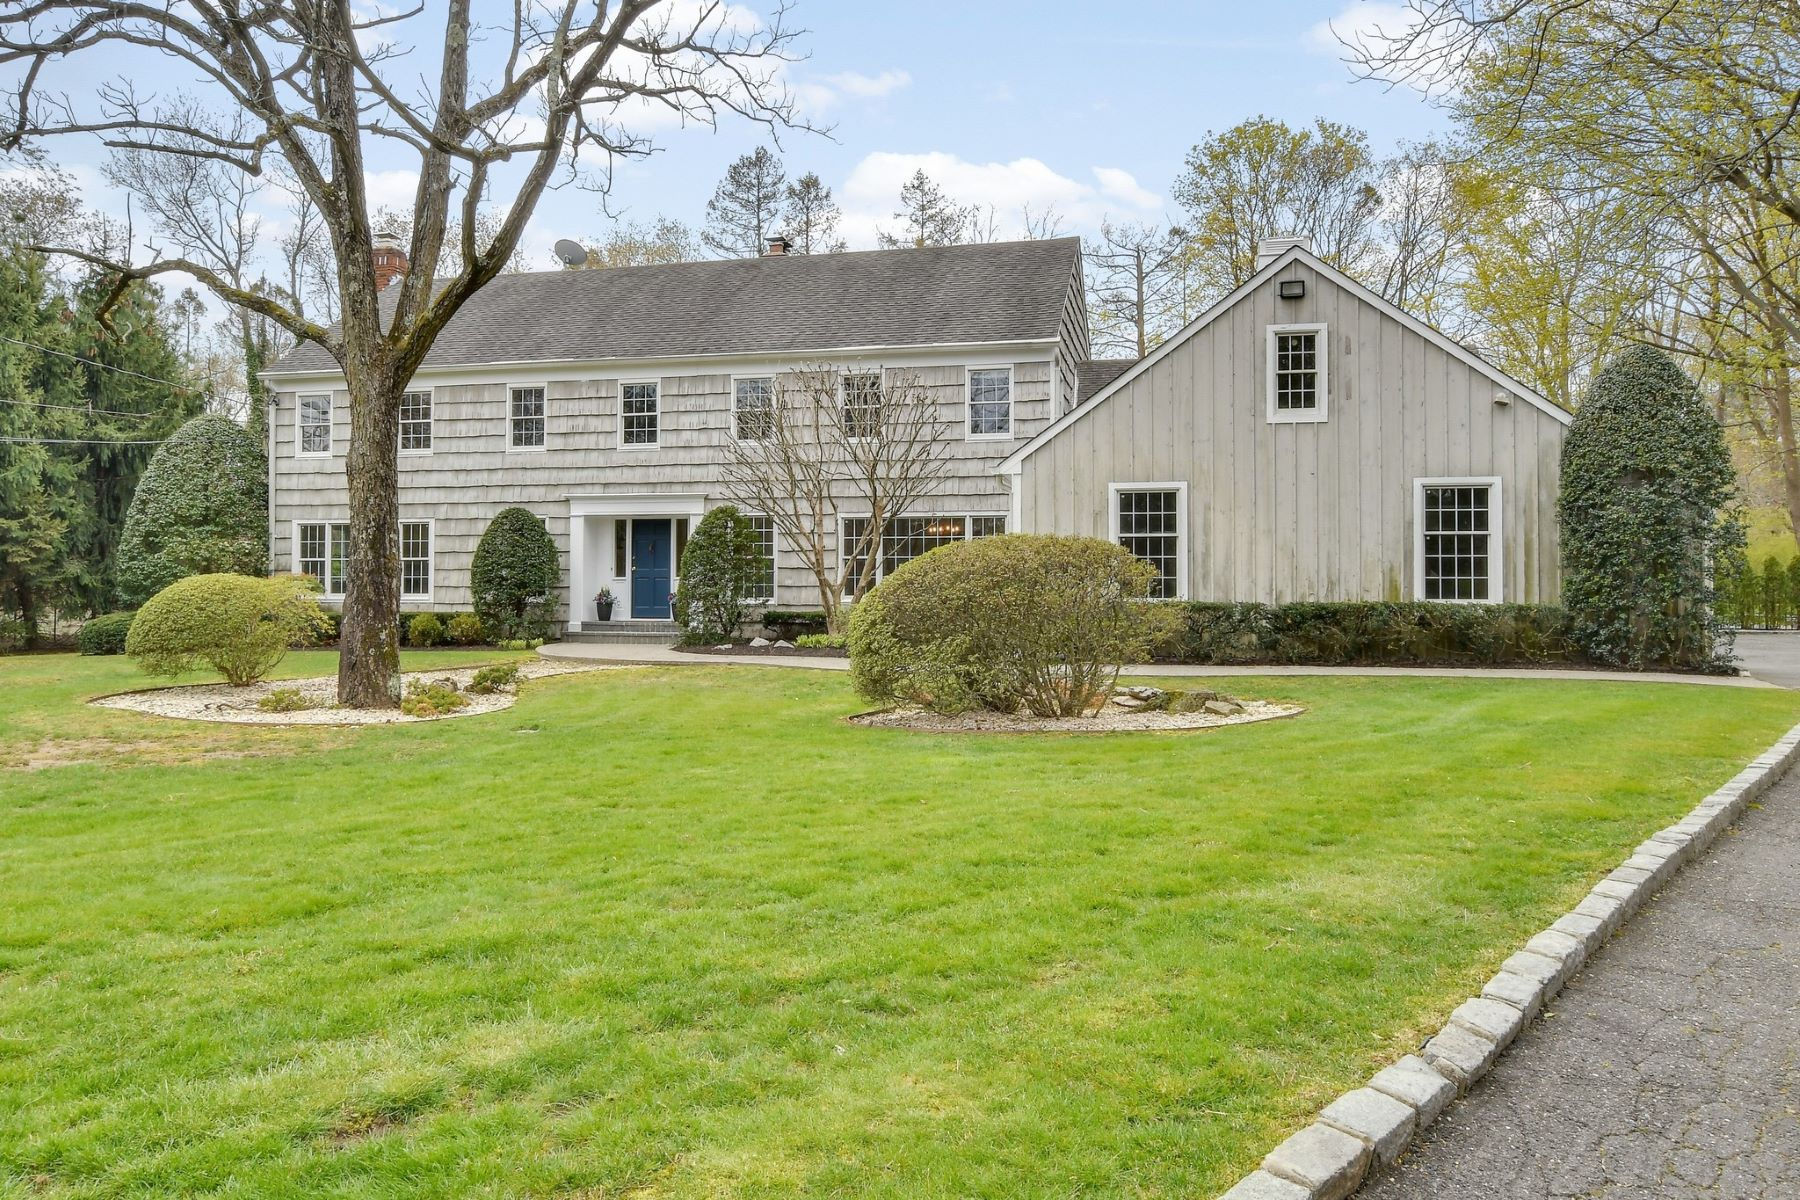 Single Family Homes for Active at Syosset 35 Towl Gate Lane Syosset, New York 11791 United States